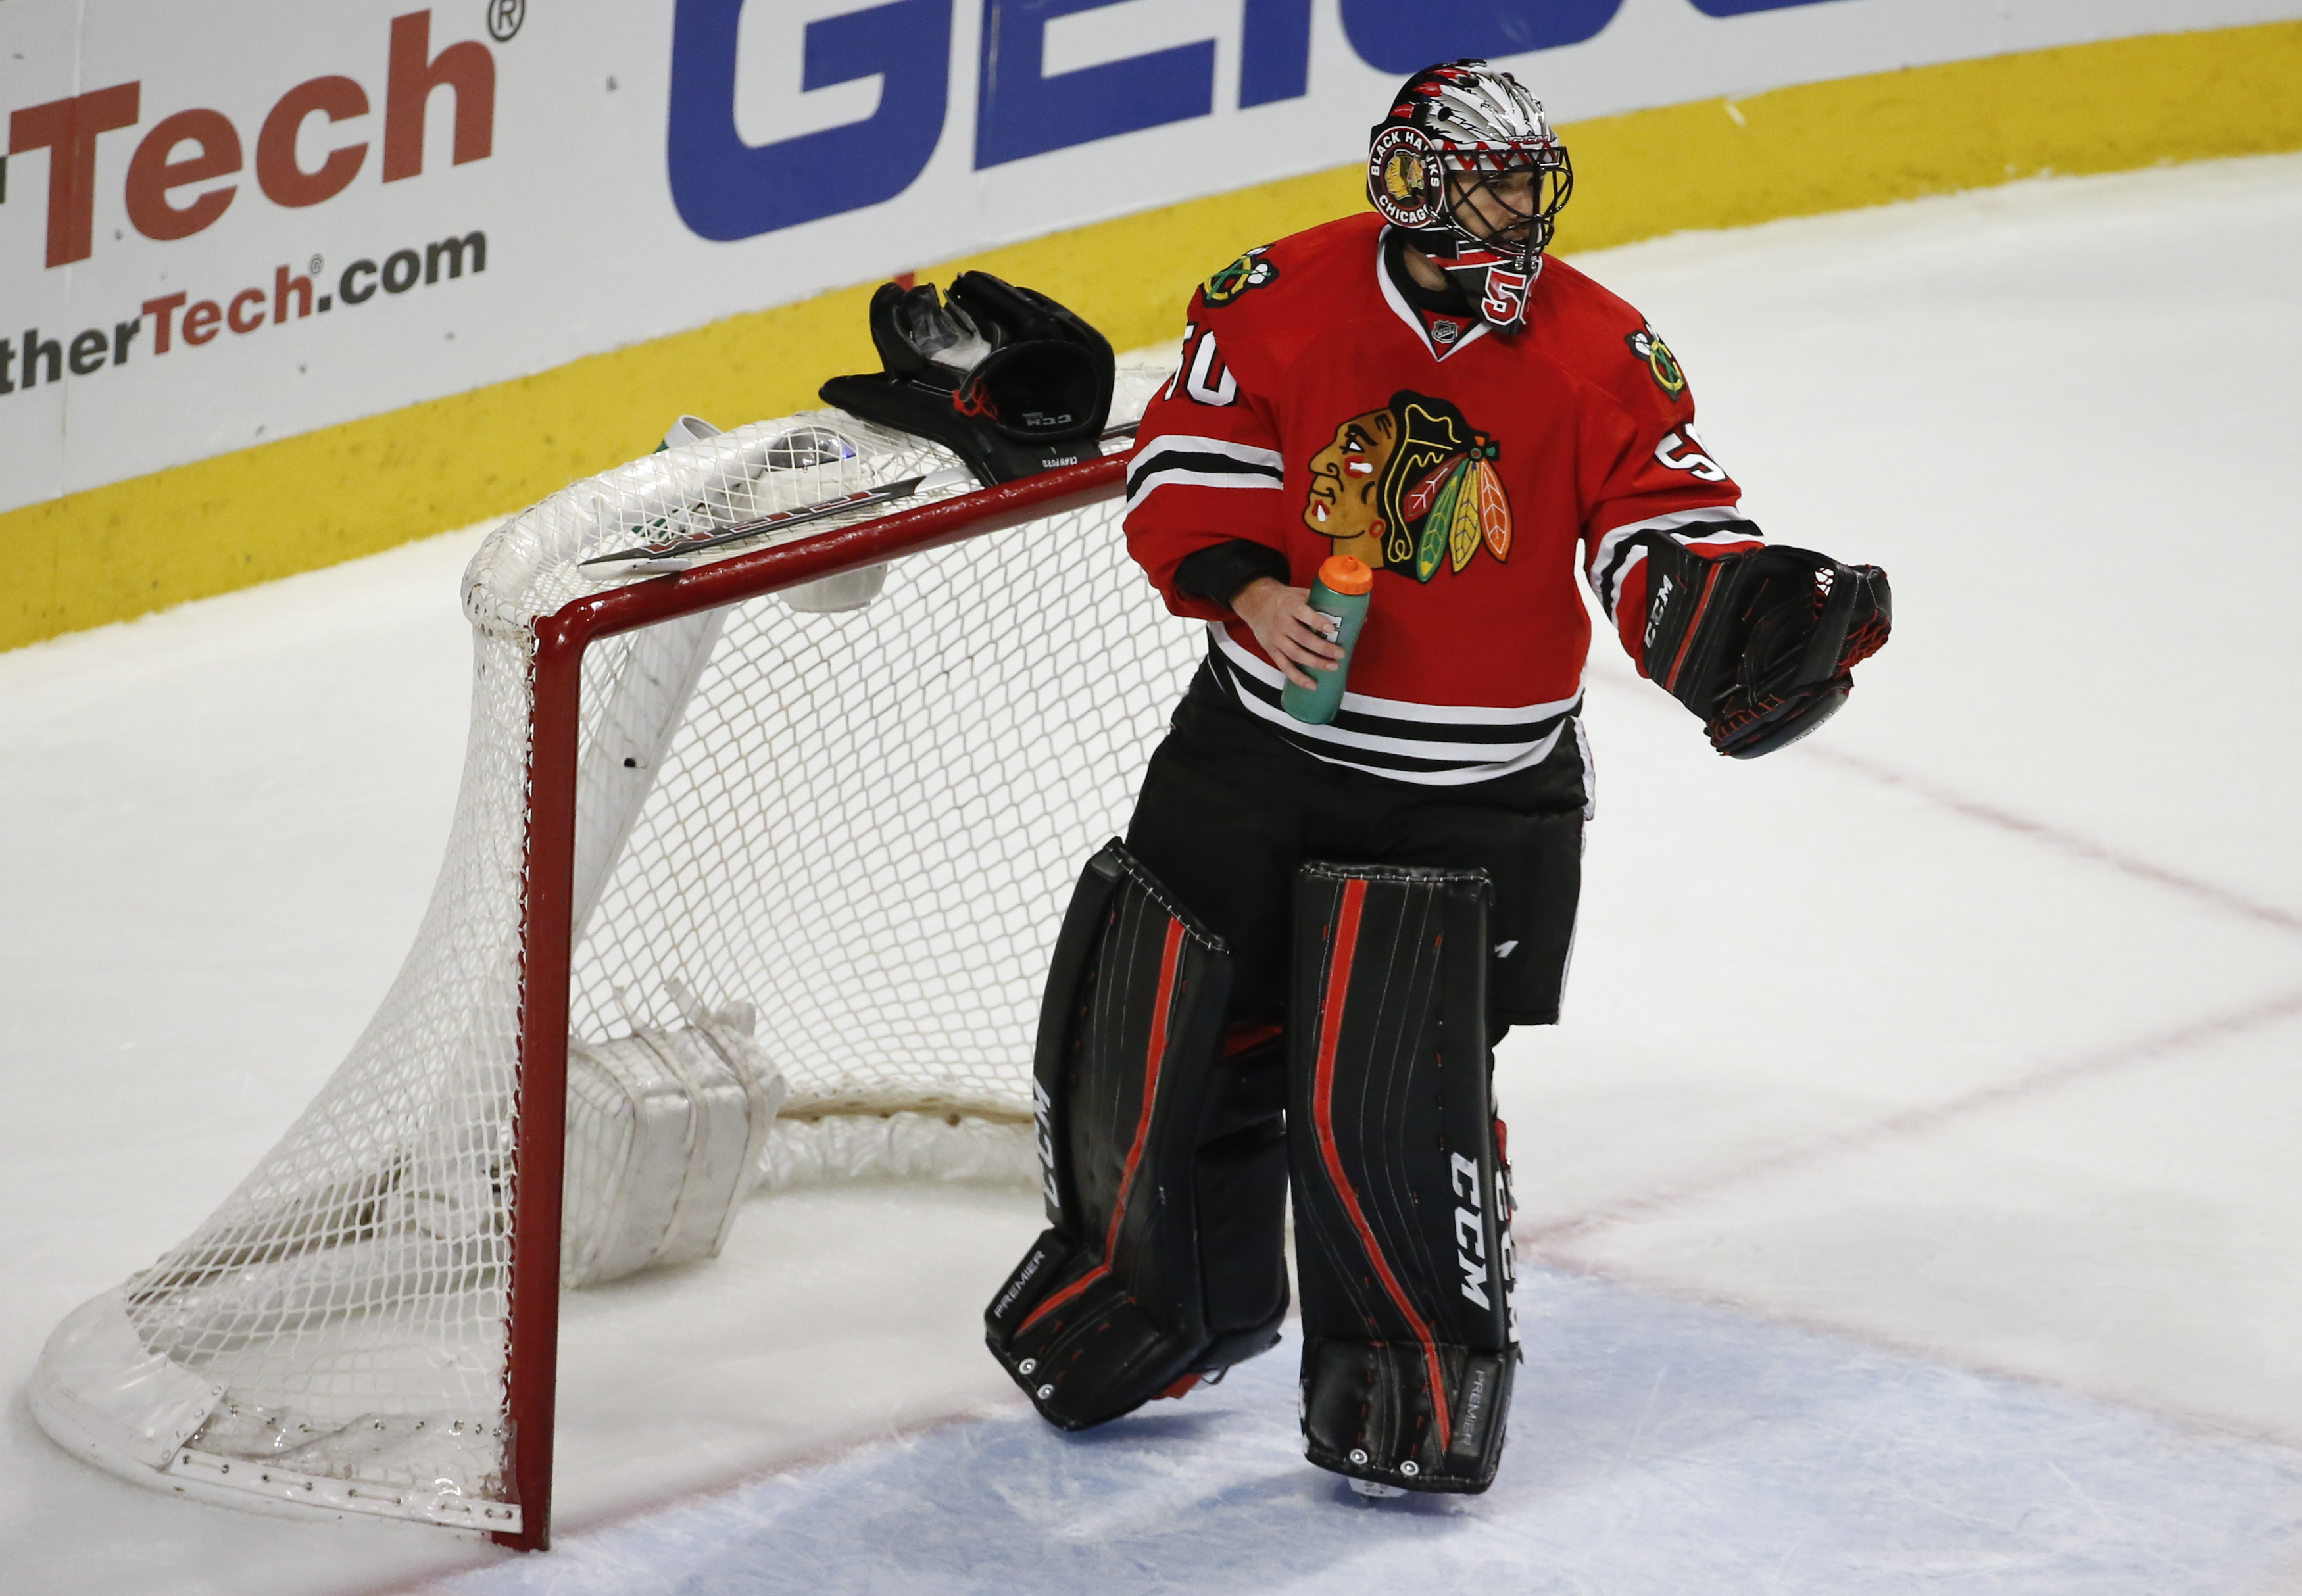 Chicago Blackhawks goalie Corey Crawford (50) reacts after allowing a goal scored by Los Angeles Kings center Vincent Lecavalier during the second period of an NHL hockey game Monday, March 14, 2016, in Chicago. (AP Photo/Kamil Krzaczynski)